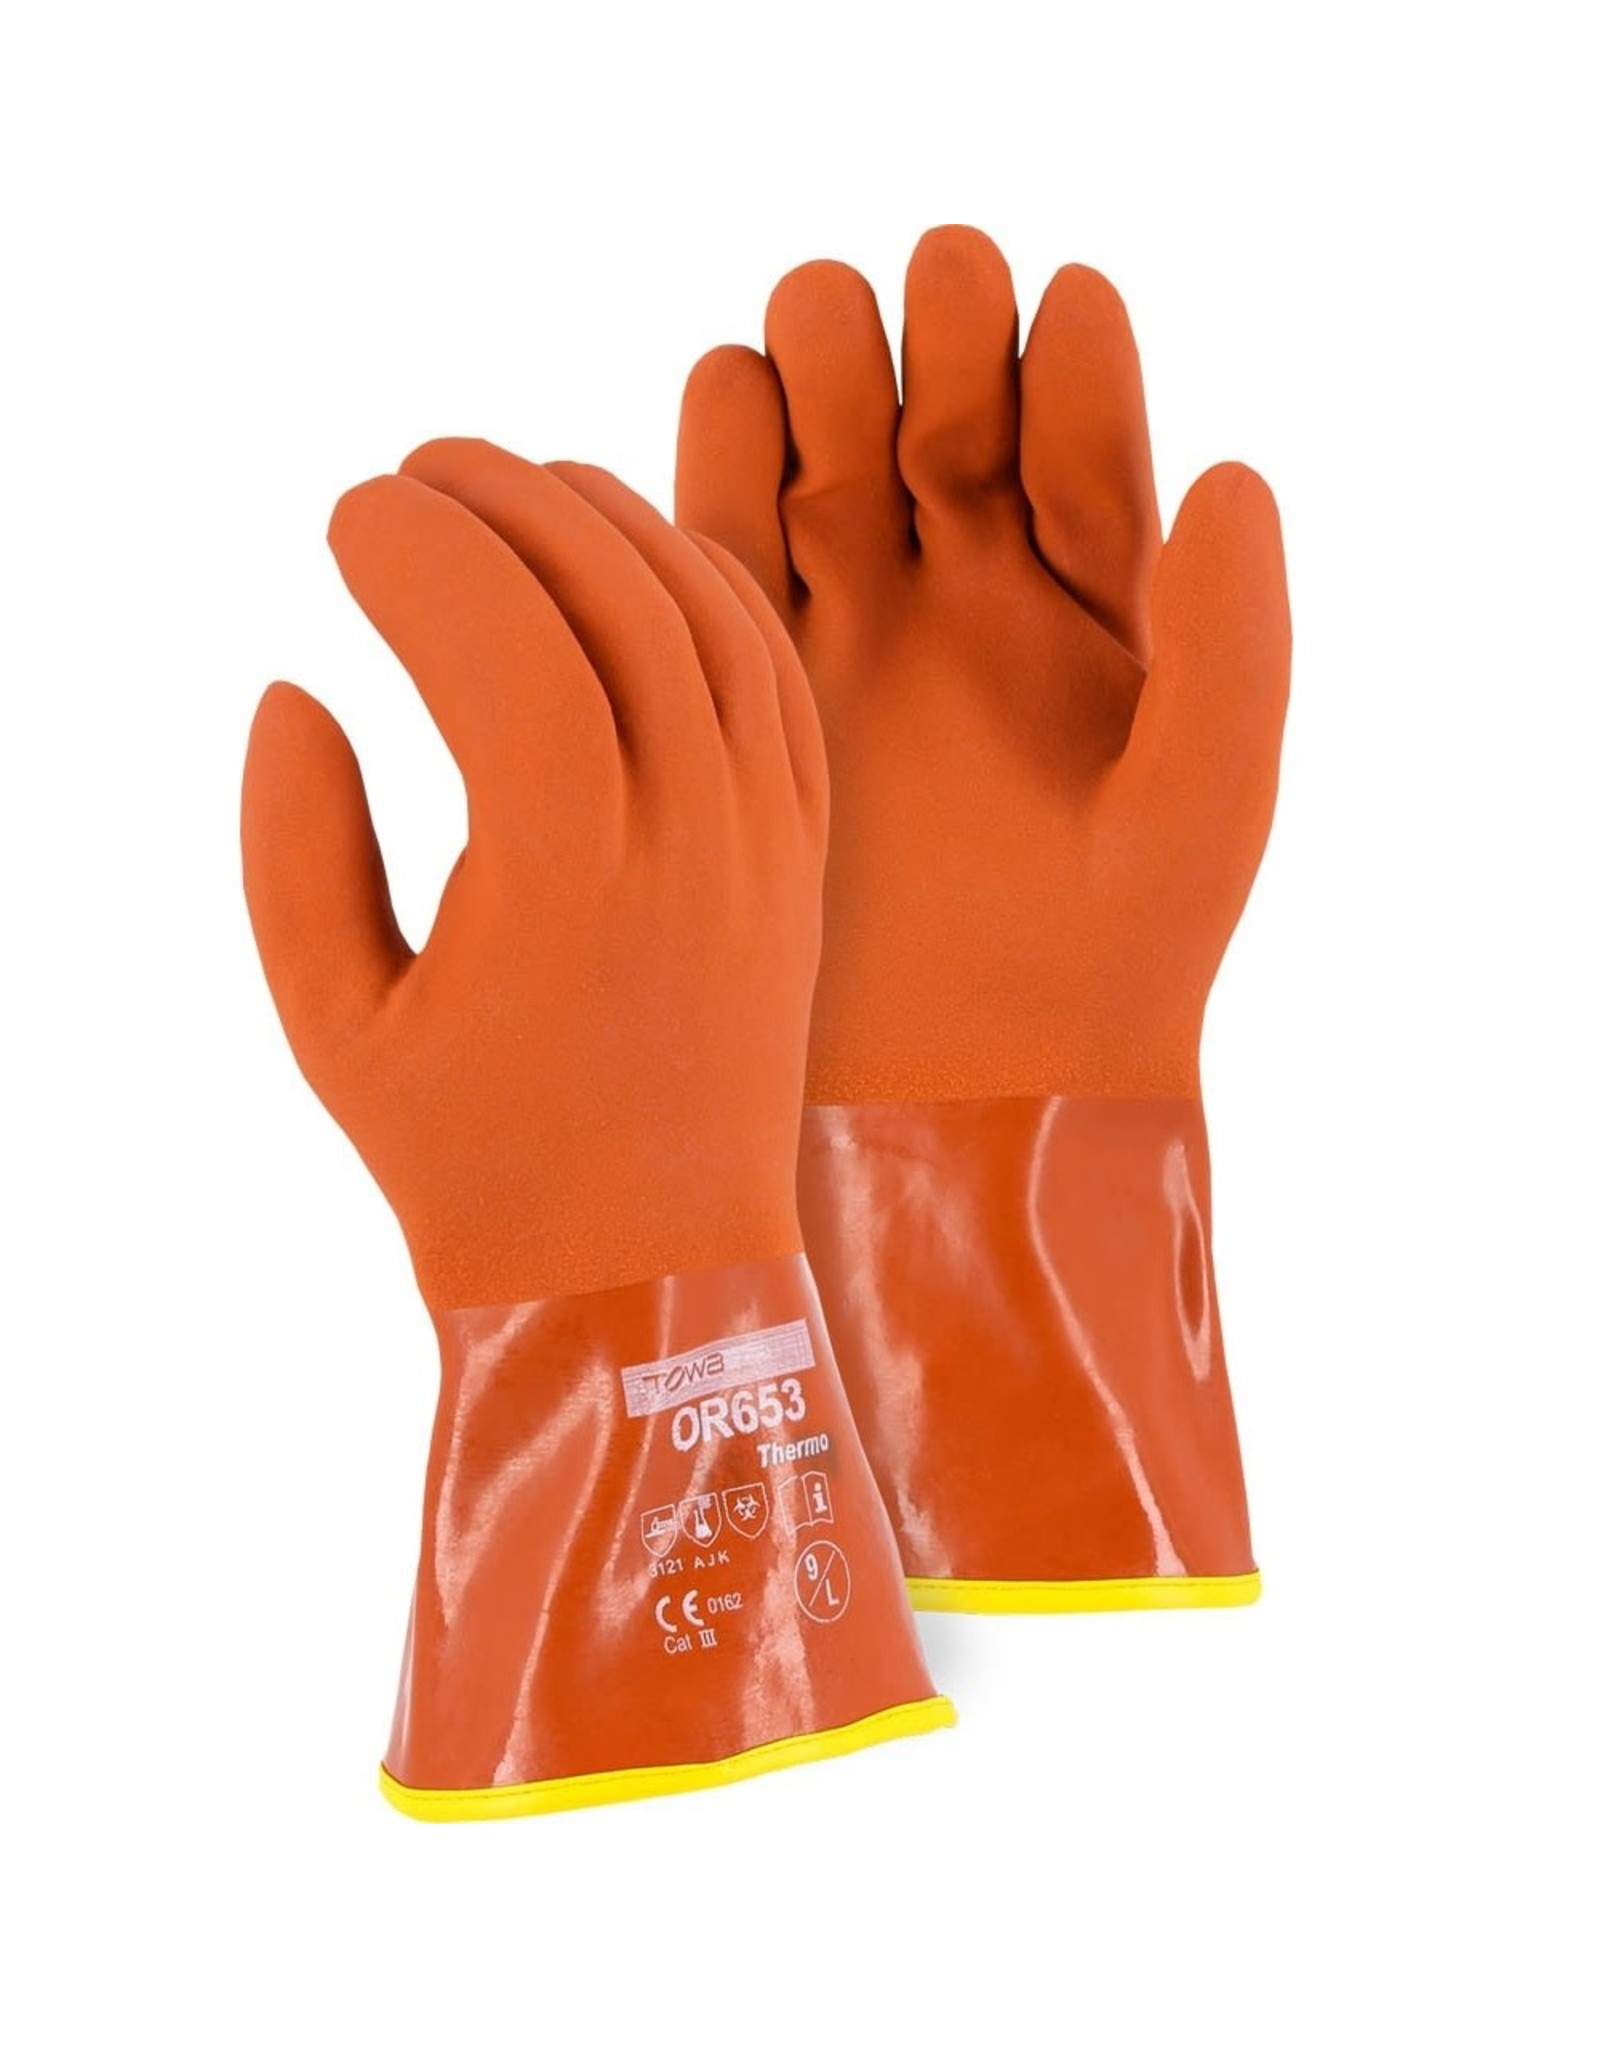 Majestic Glove Winter Lined PVC Double Dipped Glove on Seamless Knit Shell with Removable Liner M